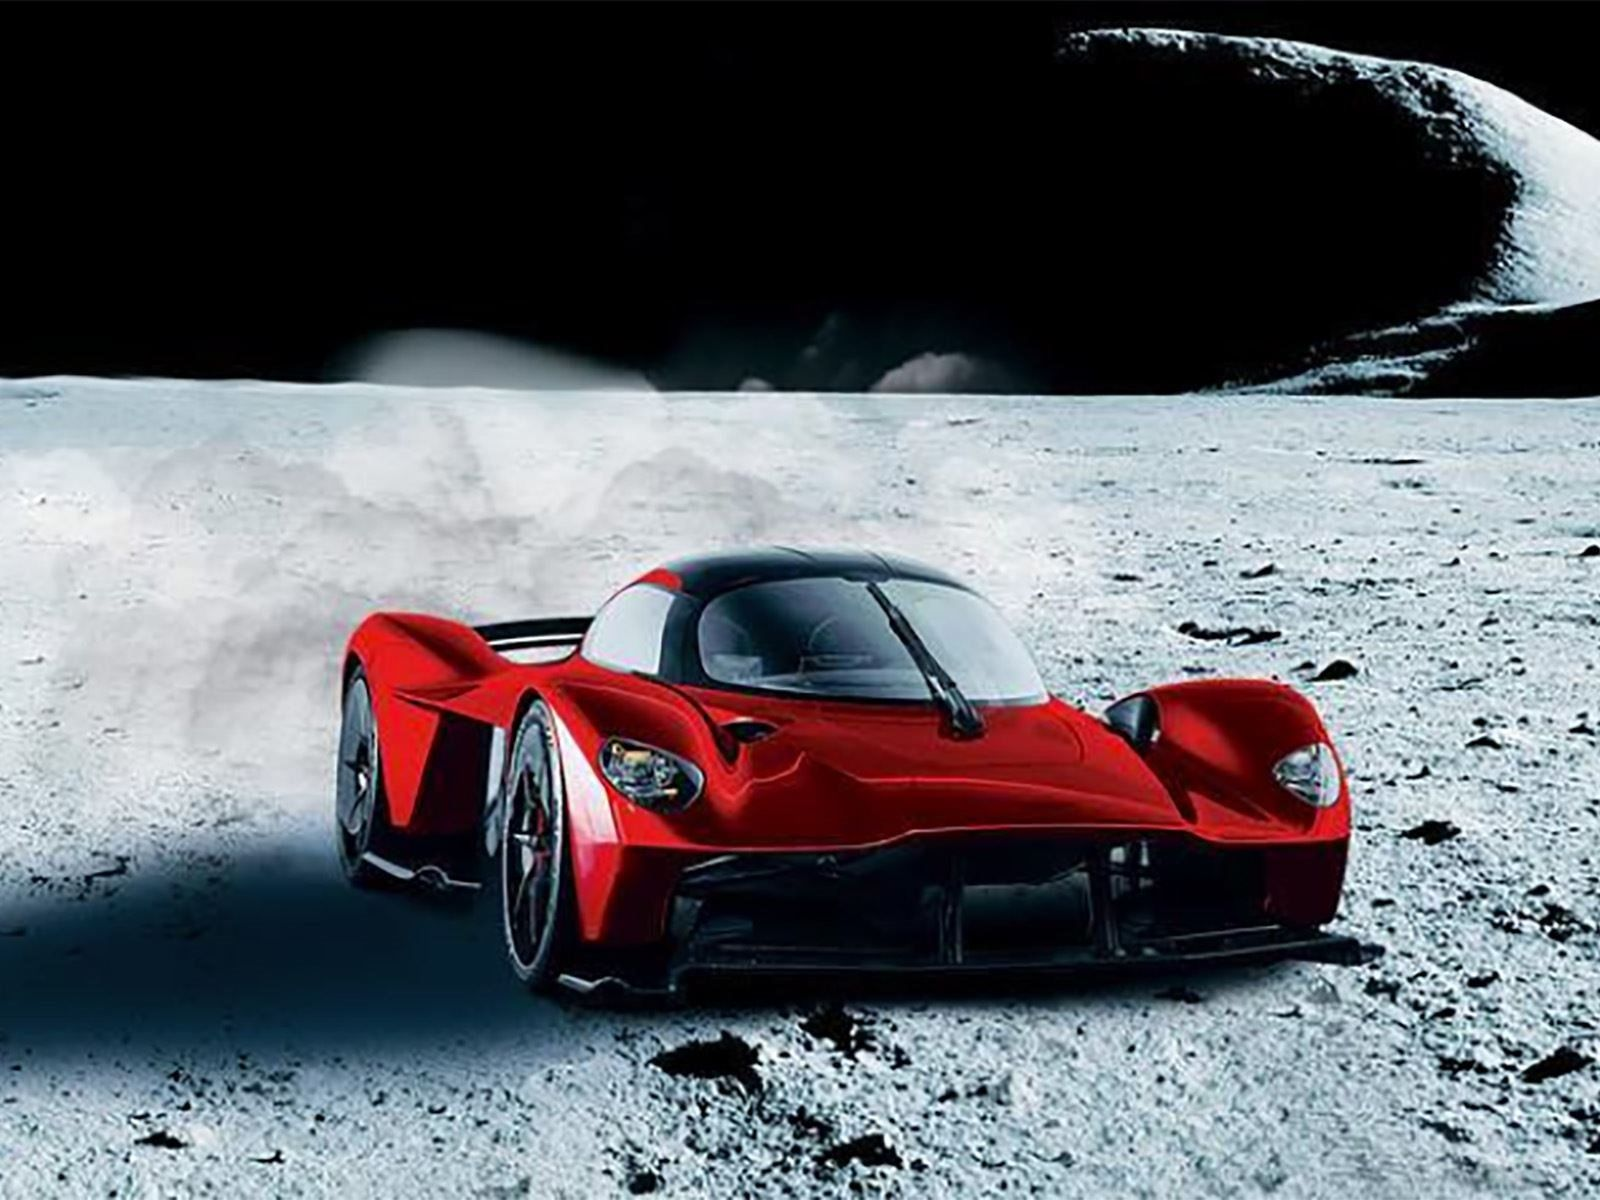 An Aston Martin Valkyrie Will Have Real Moon Dust In Its Paint